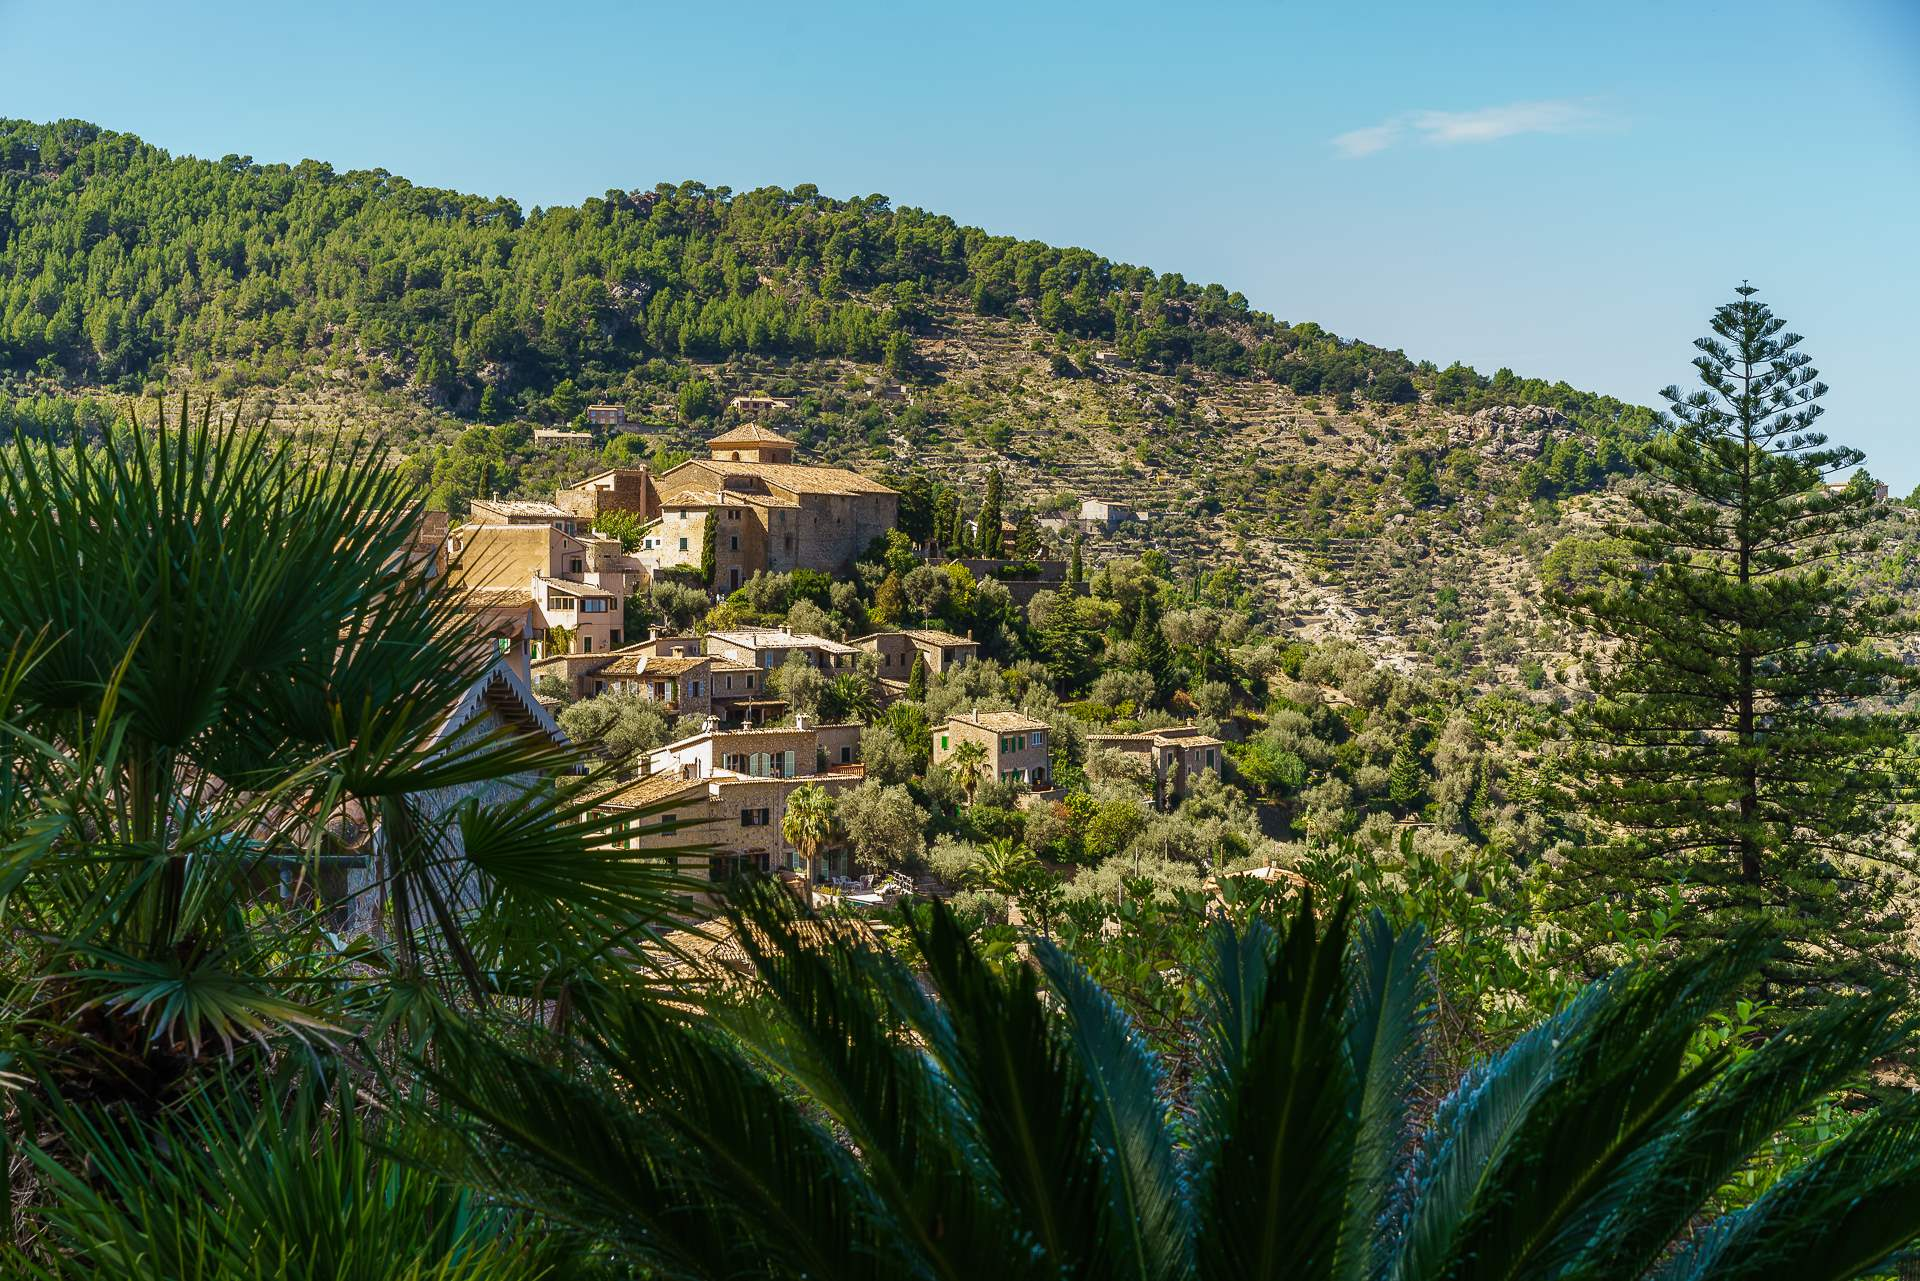 Sa Tanca, 3 Bedroom Rental, 3 bedroom villa in Soller & Deia, Majorca Photo #34